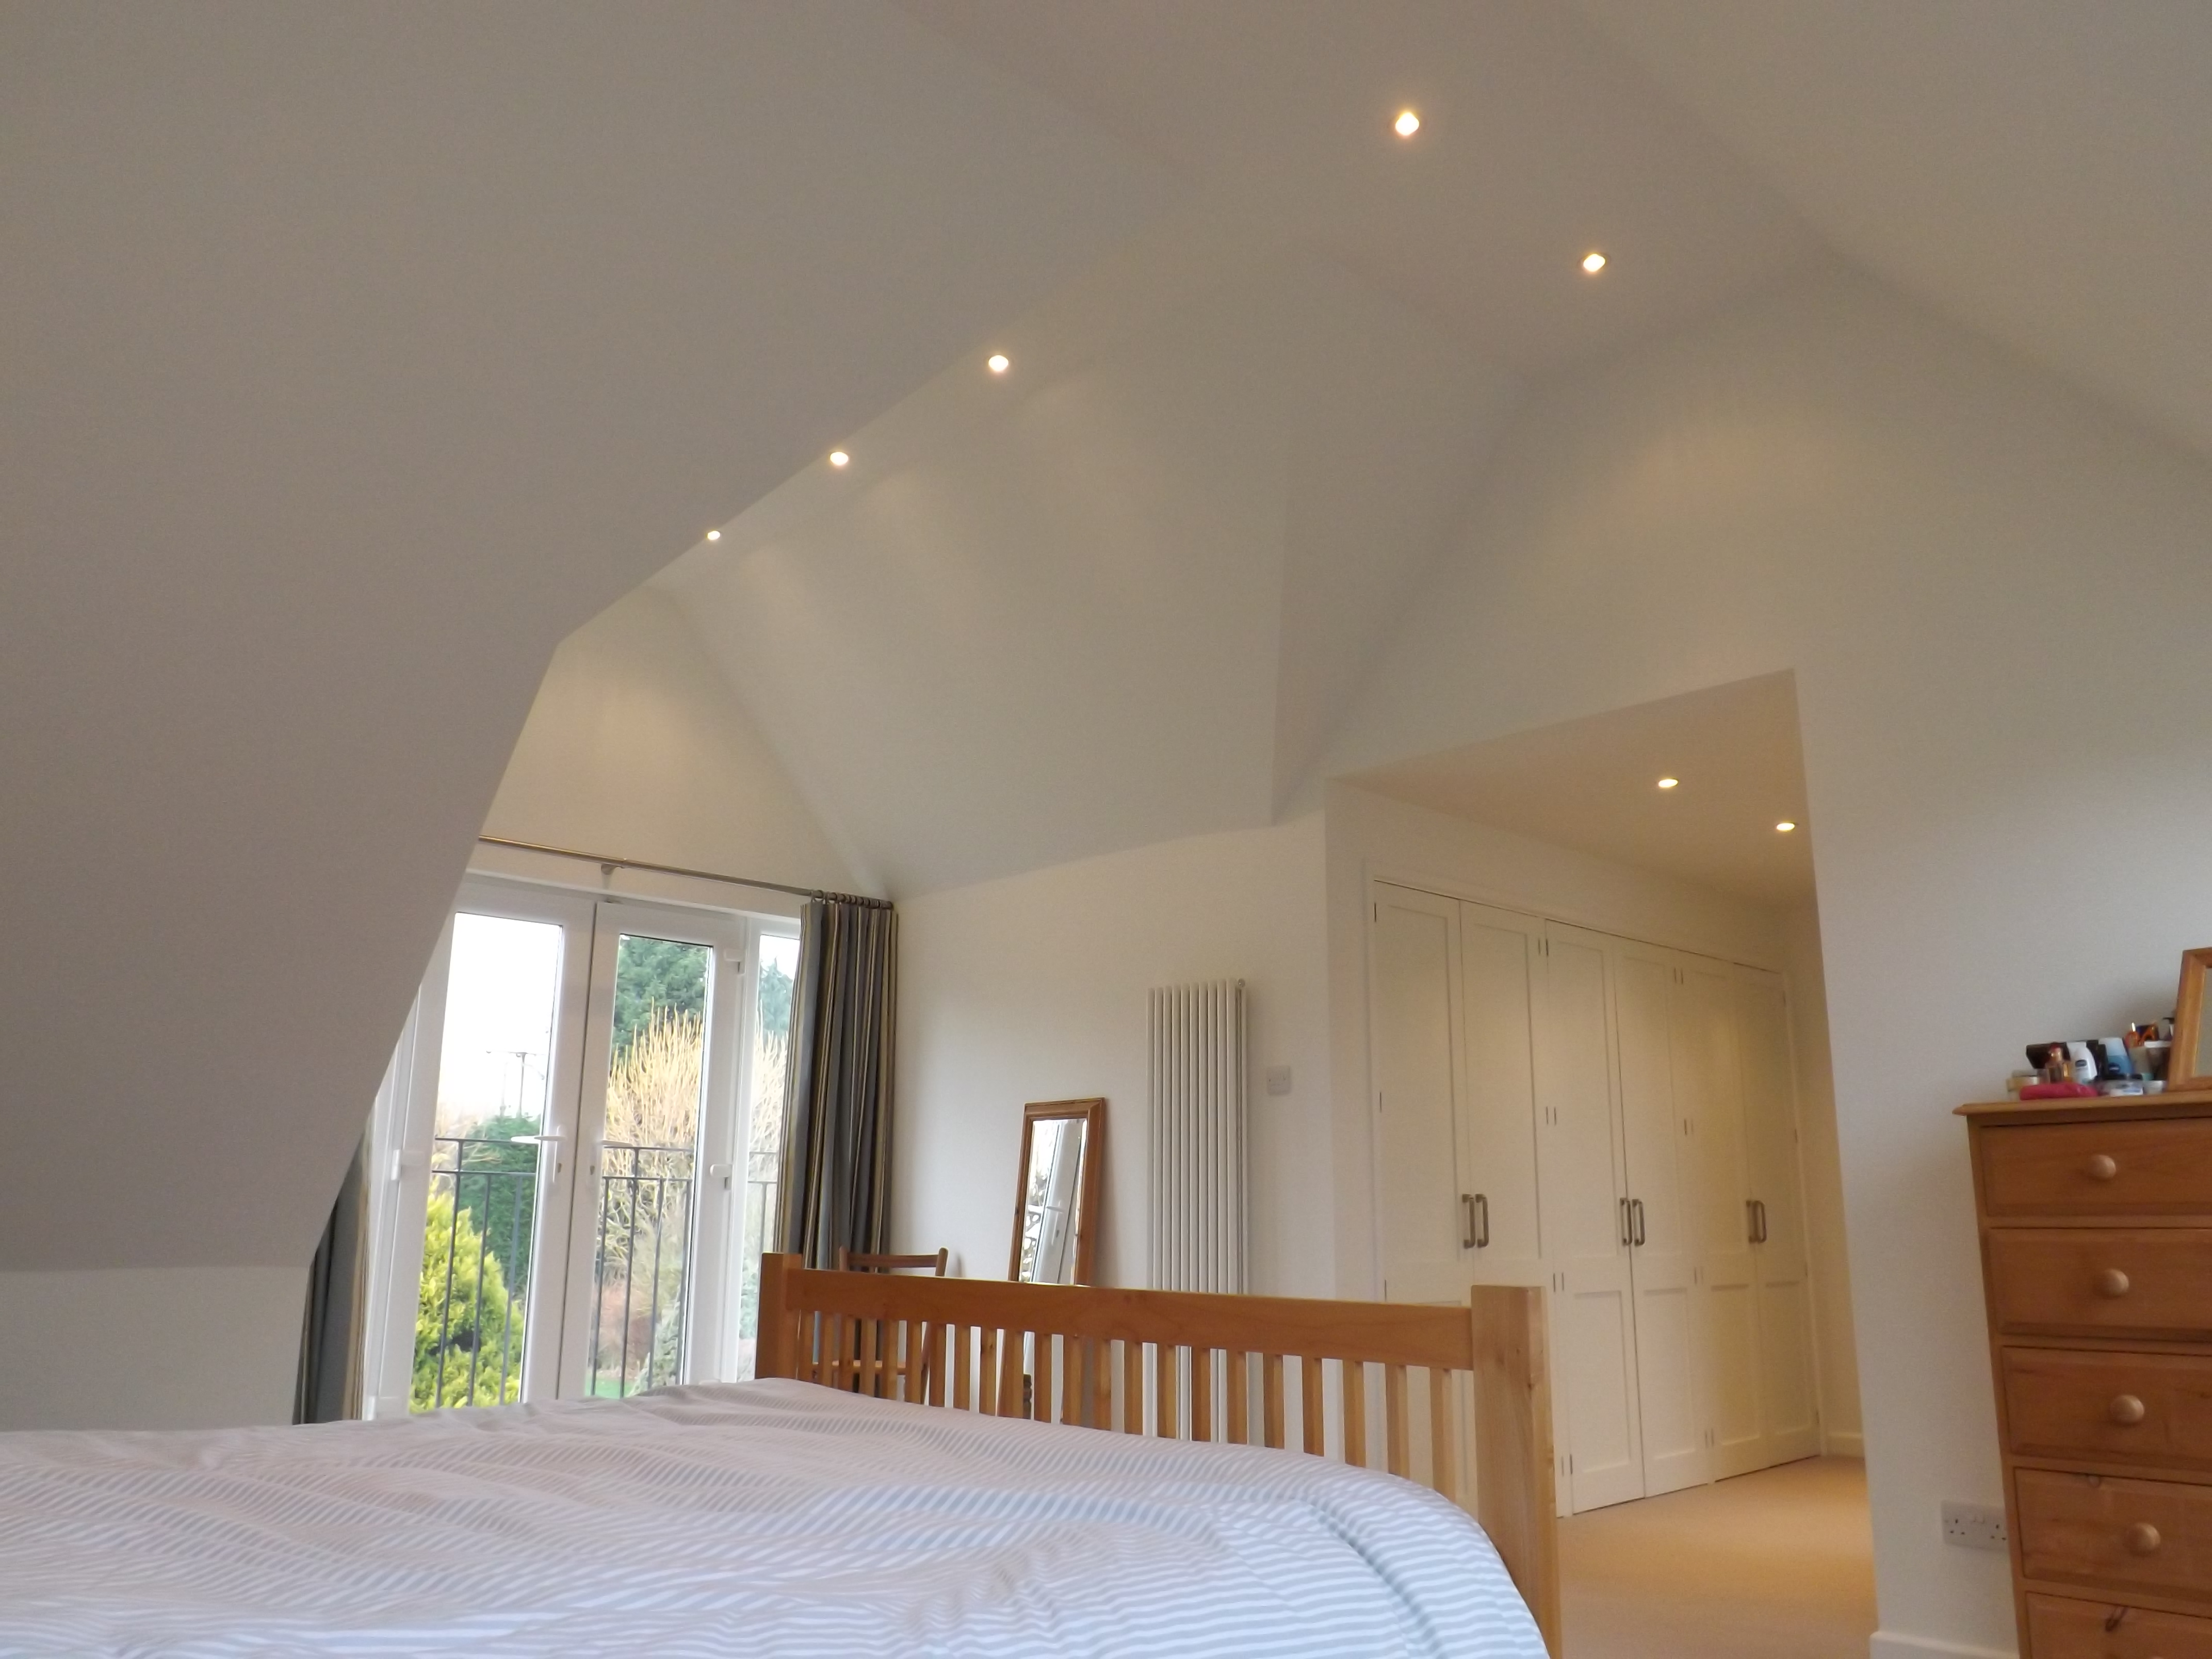 Loft Conversion & Remodelling, Welford-on-Avon